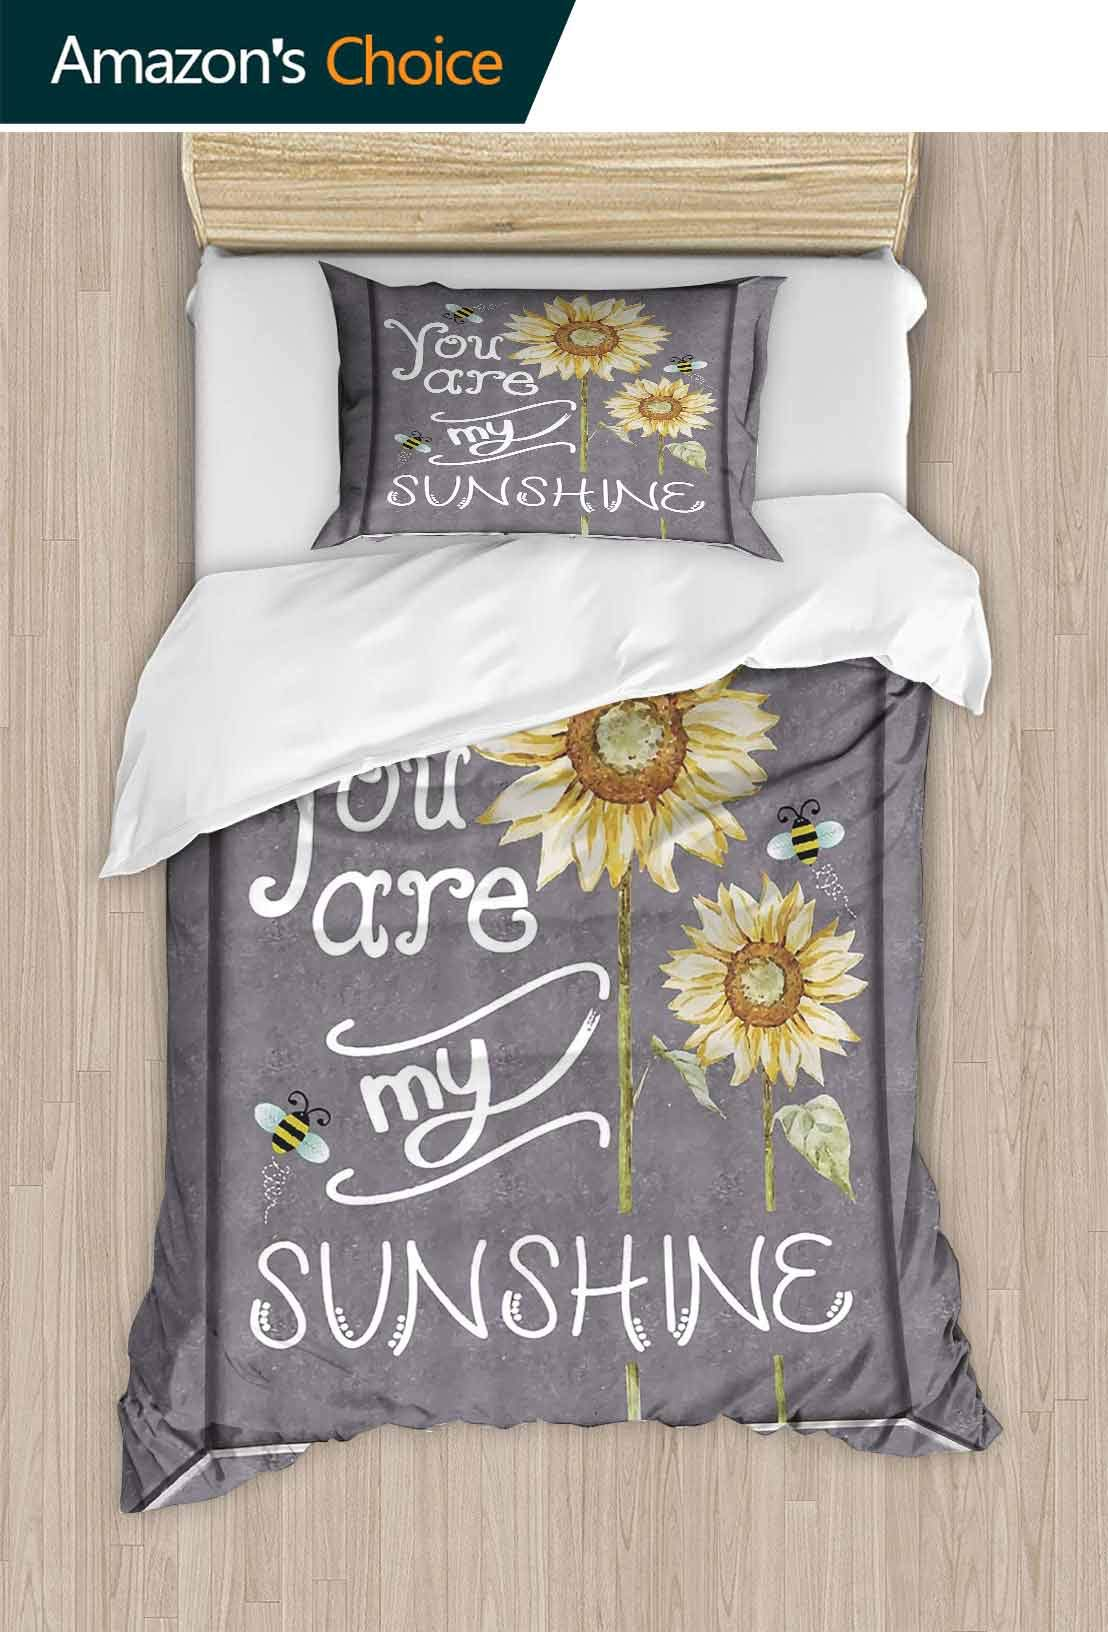 PRUNUSHOME Polyester Bedding Love Signs Decorations Collection You are My Sunshine Quote on a Black Board Ultra Soft Hypoallergenic King